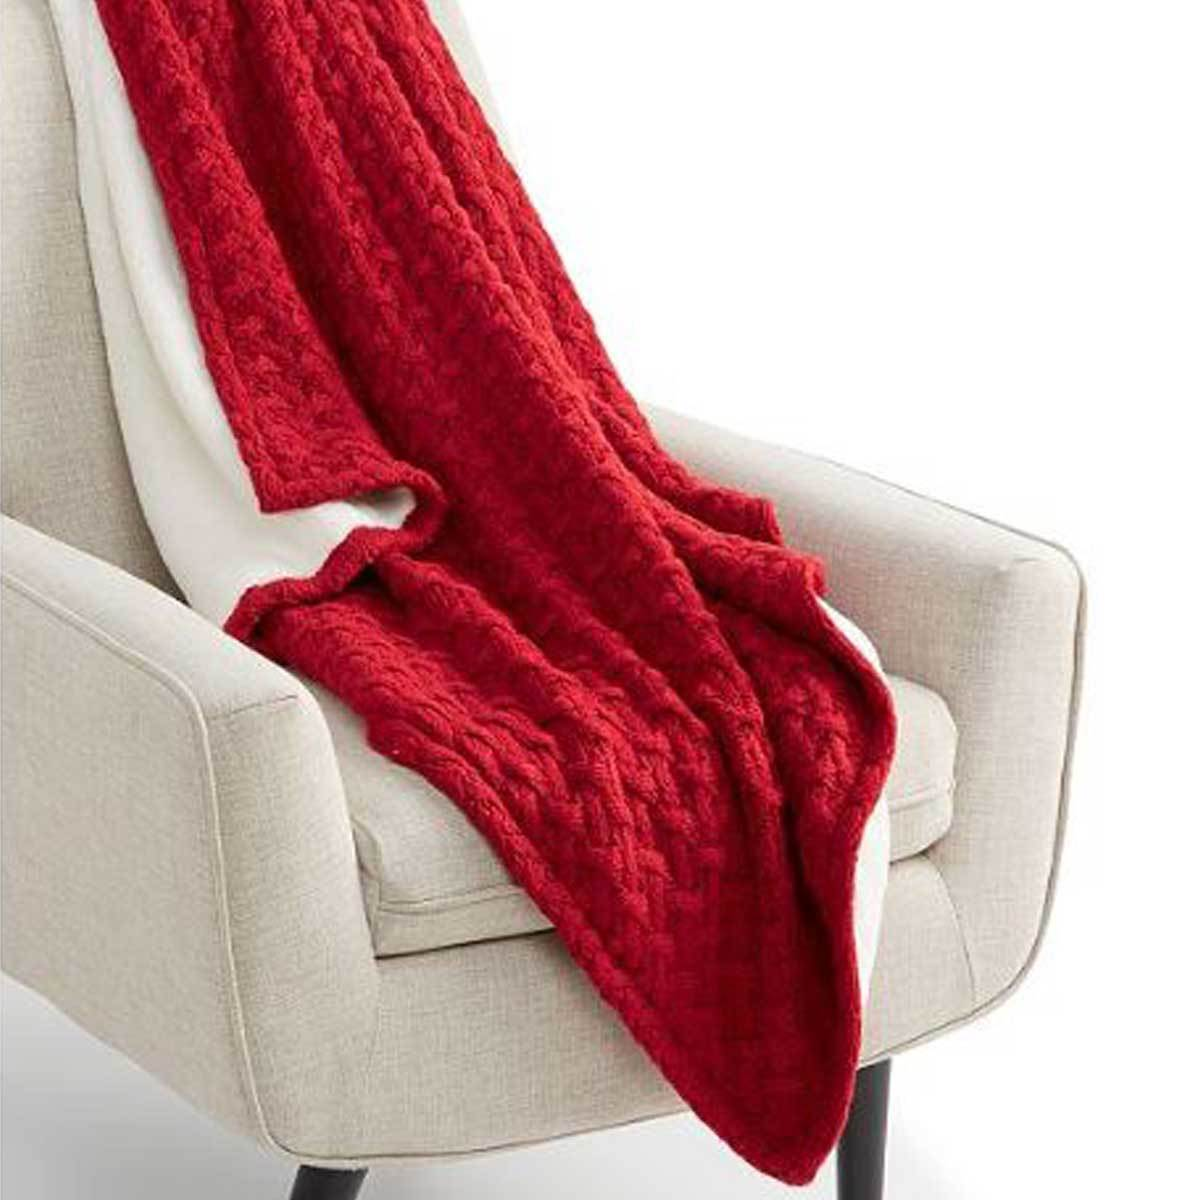 Red sweaterknit throw blanket with white faux fur on a beige armchair photo